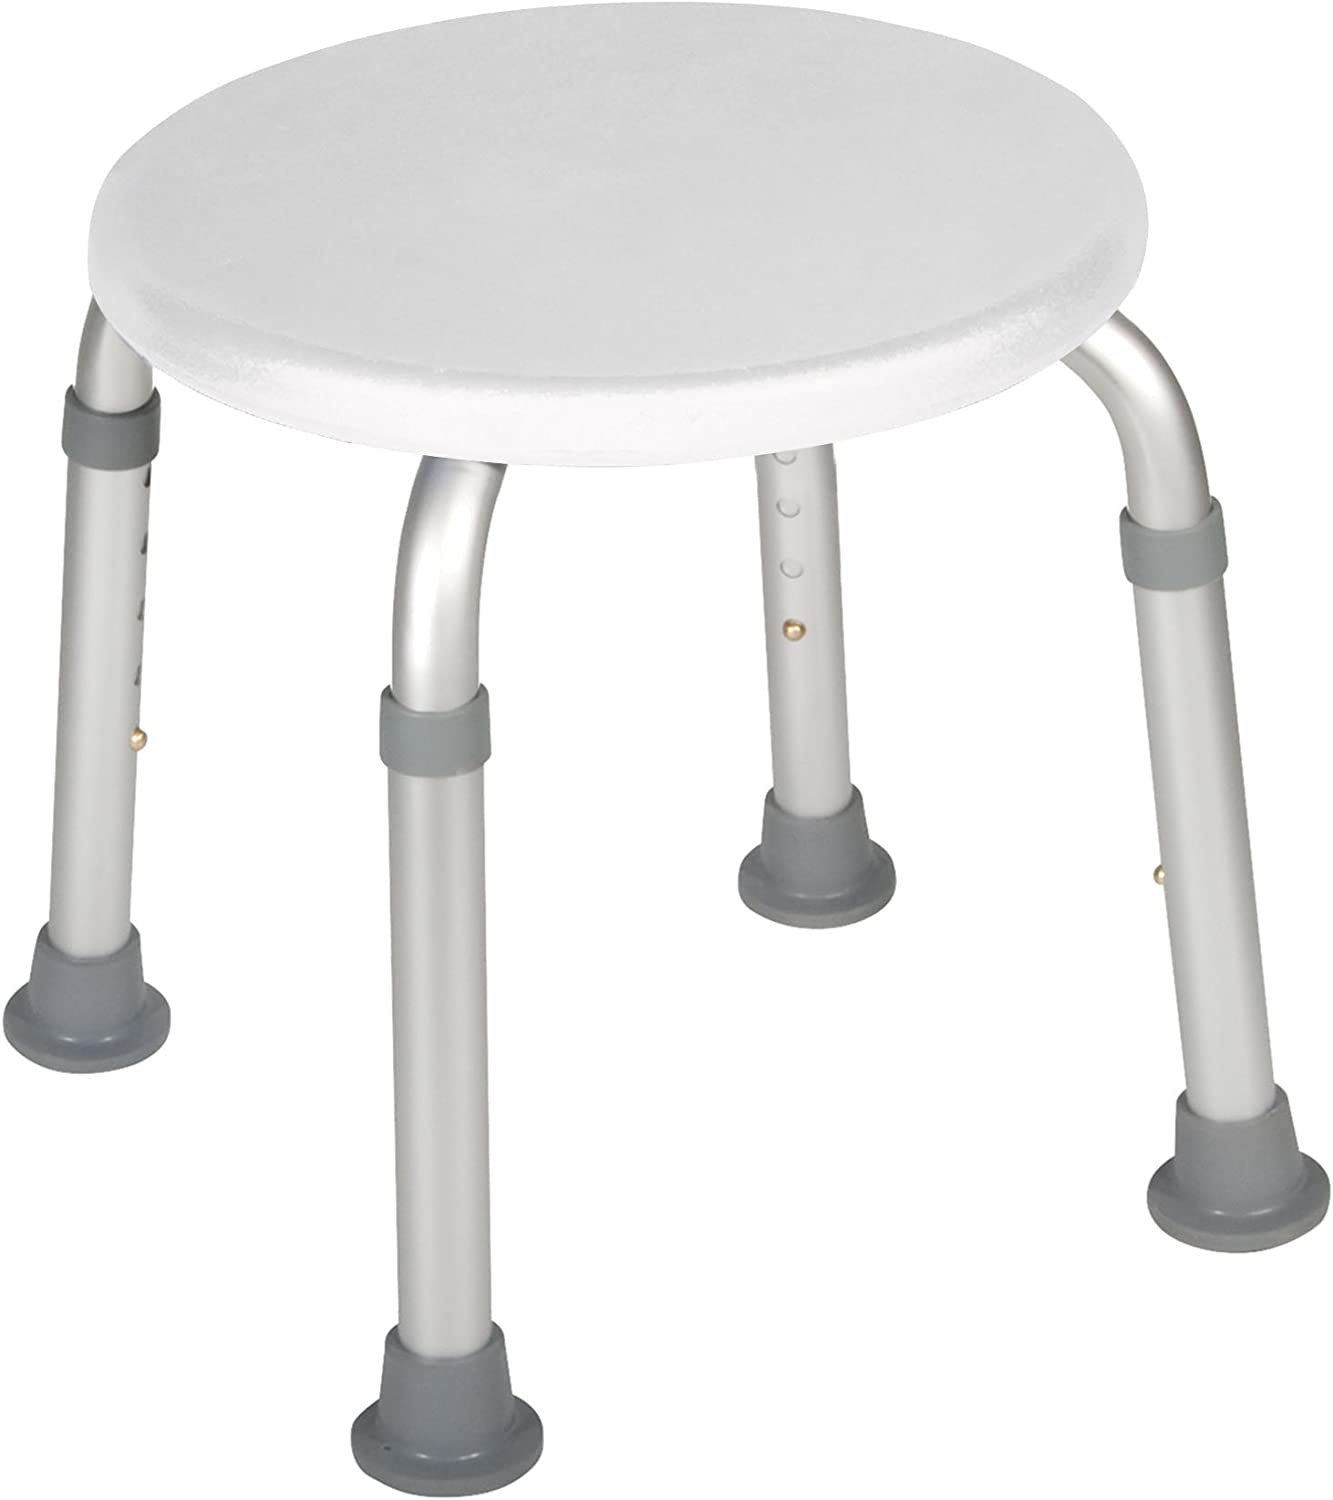 Drive Medical Adjustable Height Bath Stool, White: Health & Personal Care